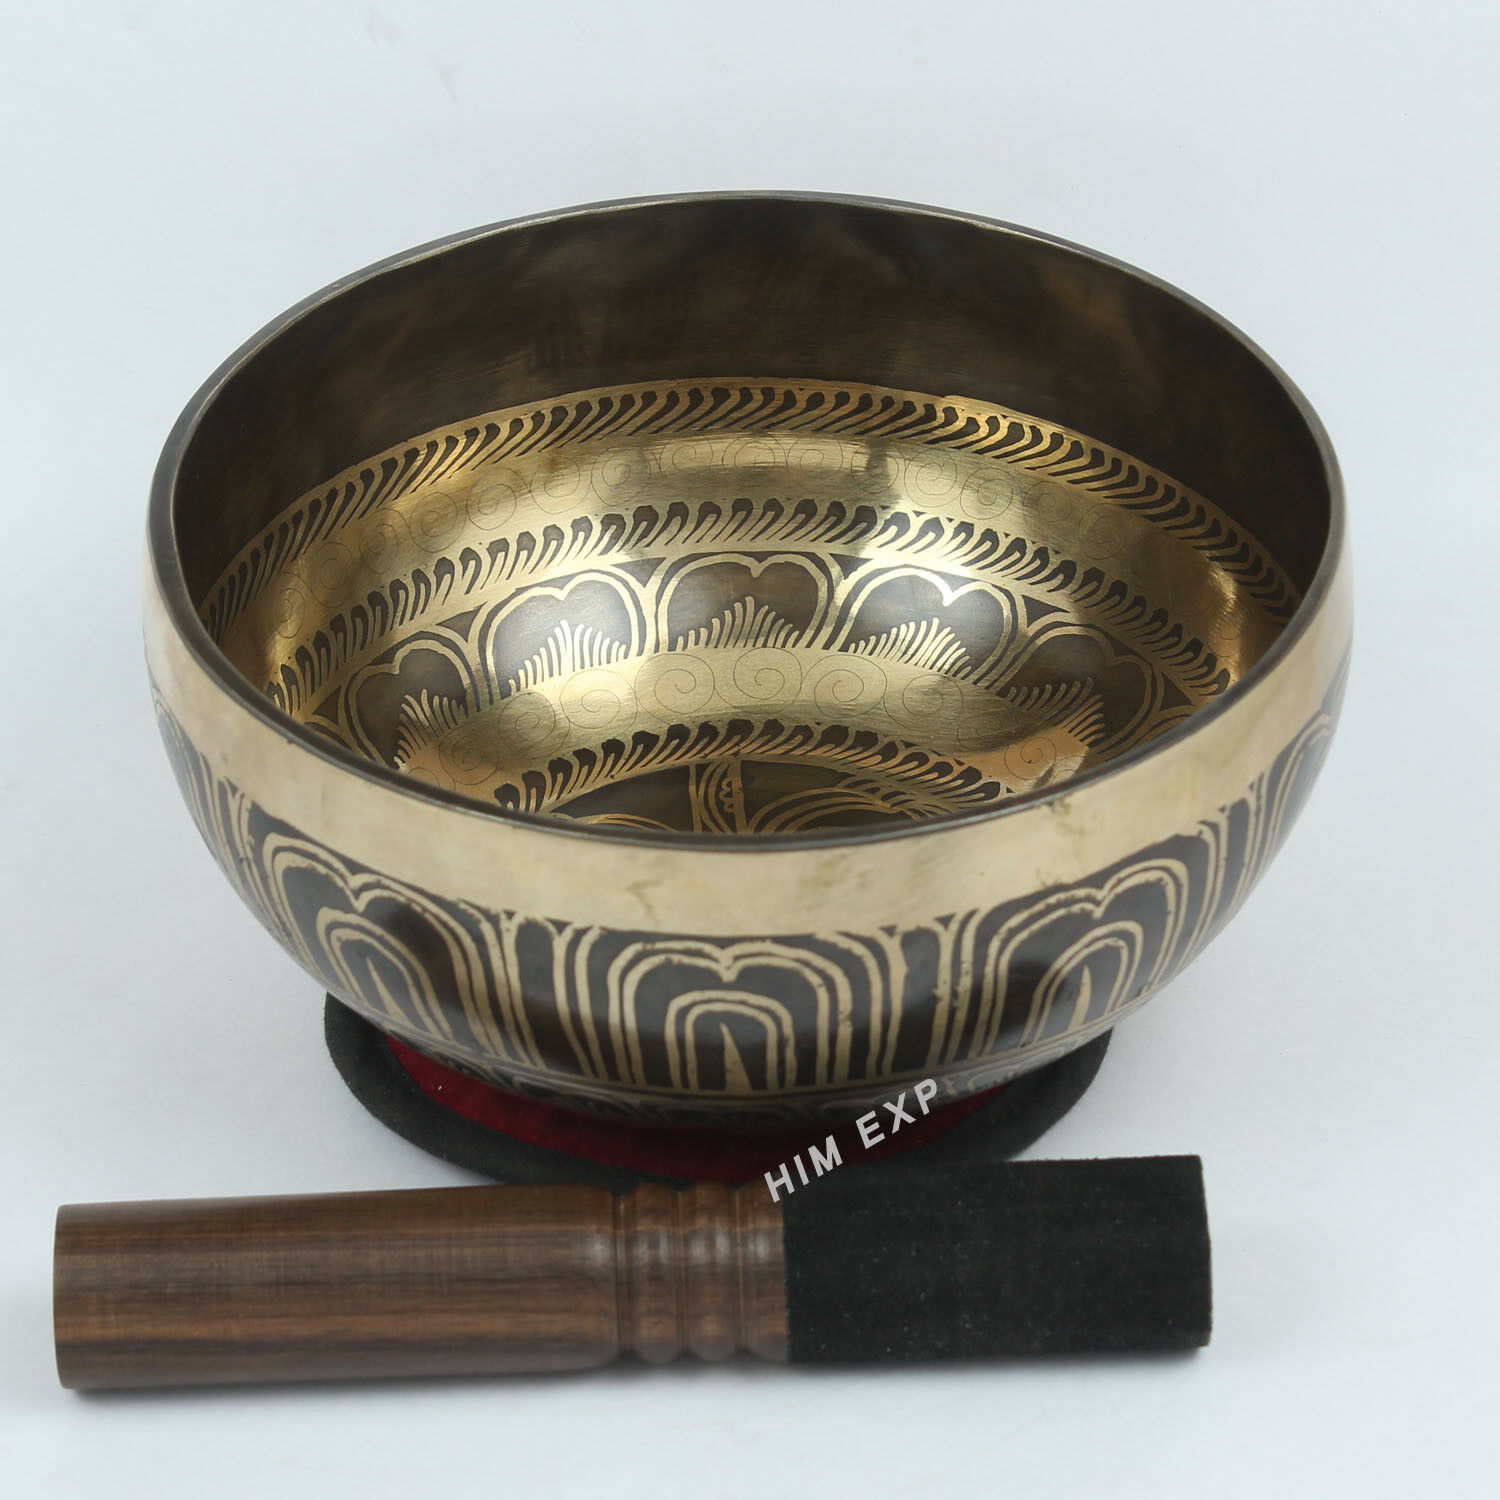 Symbols Carved  Meditation and  Healing 7 Metal  Singing Bowl from Nepal